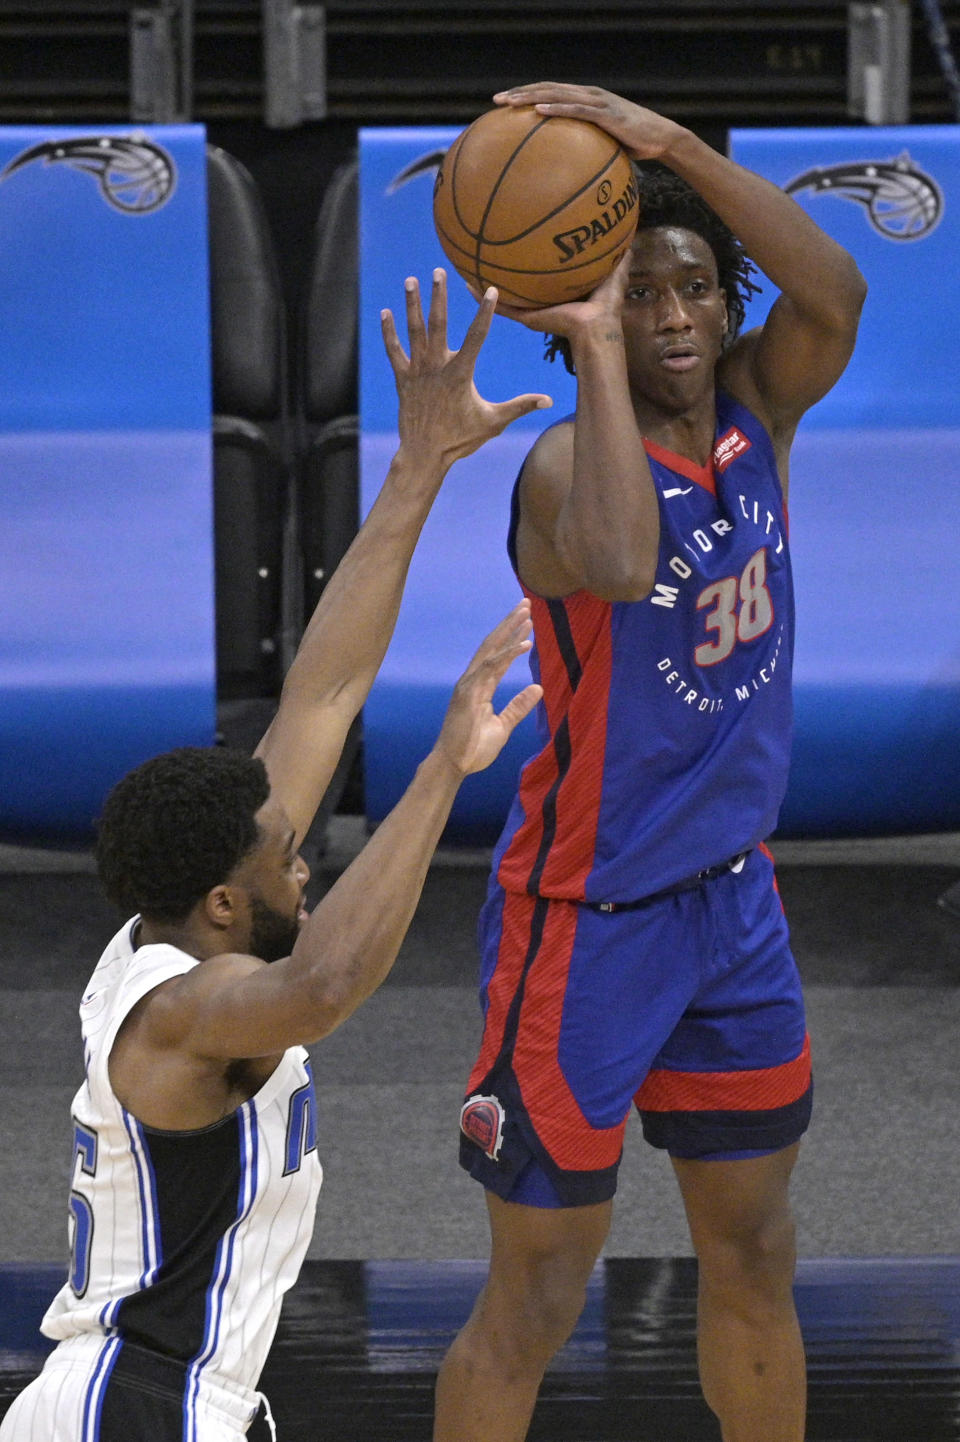 Detroit Pistons guard Saben Lee (38) attempts a 3-point shot in front of Orlando Magic guard Chasson Randle (25) during the first half of an NBA basketball game, Tuesday, Feb. 23, 2021, in Orlando, Fla. (AP Photo/Phelan M. Ebenhack)